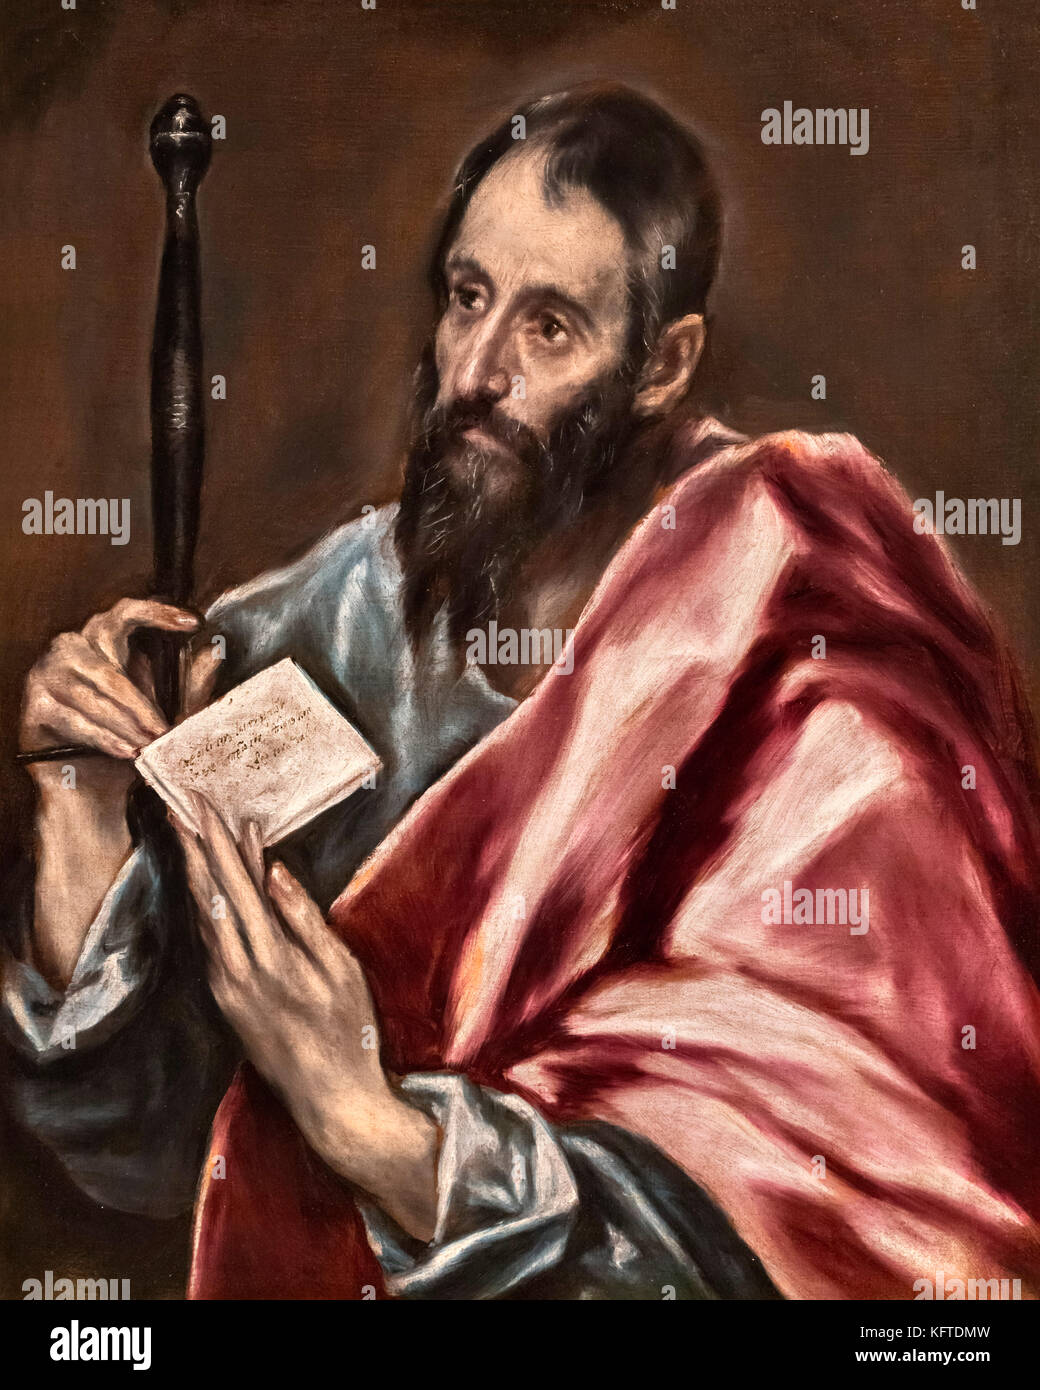 St Paul by El Greco (Domenikos Theotokopoulos, 1541-1614), oil on canvas, c.1598-1600 - Stock Image